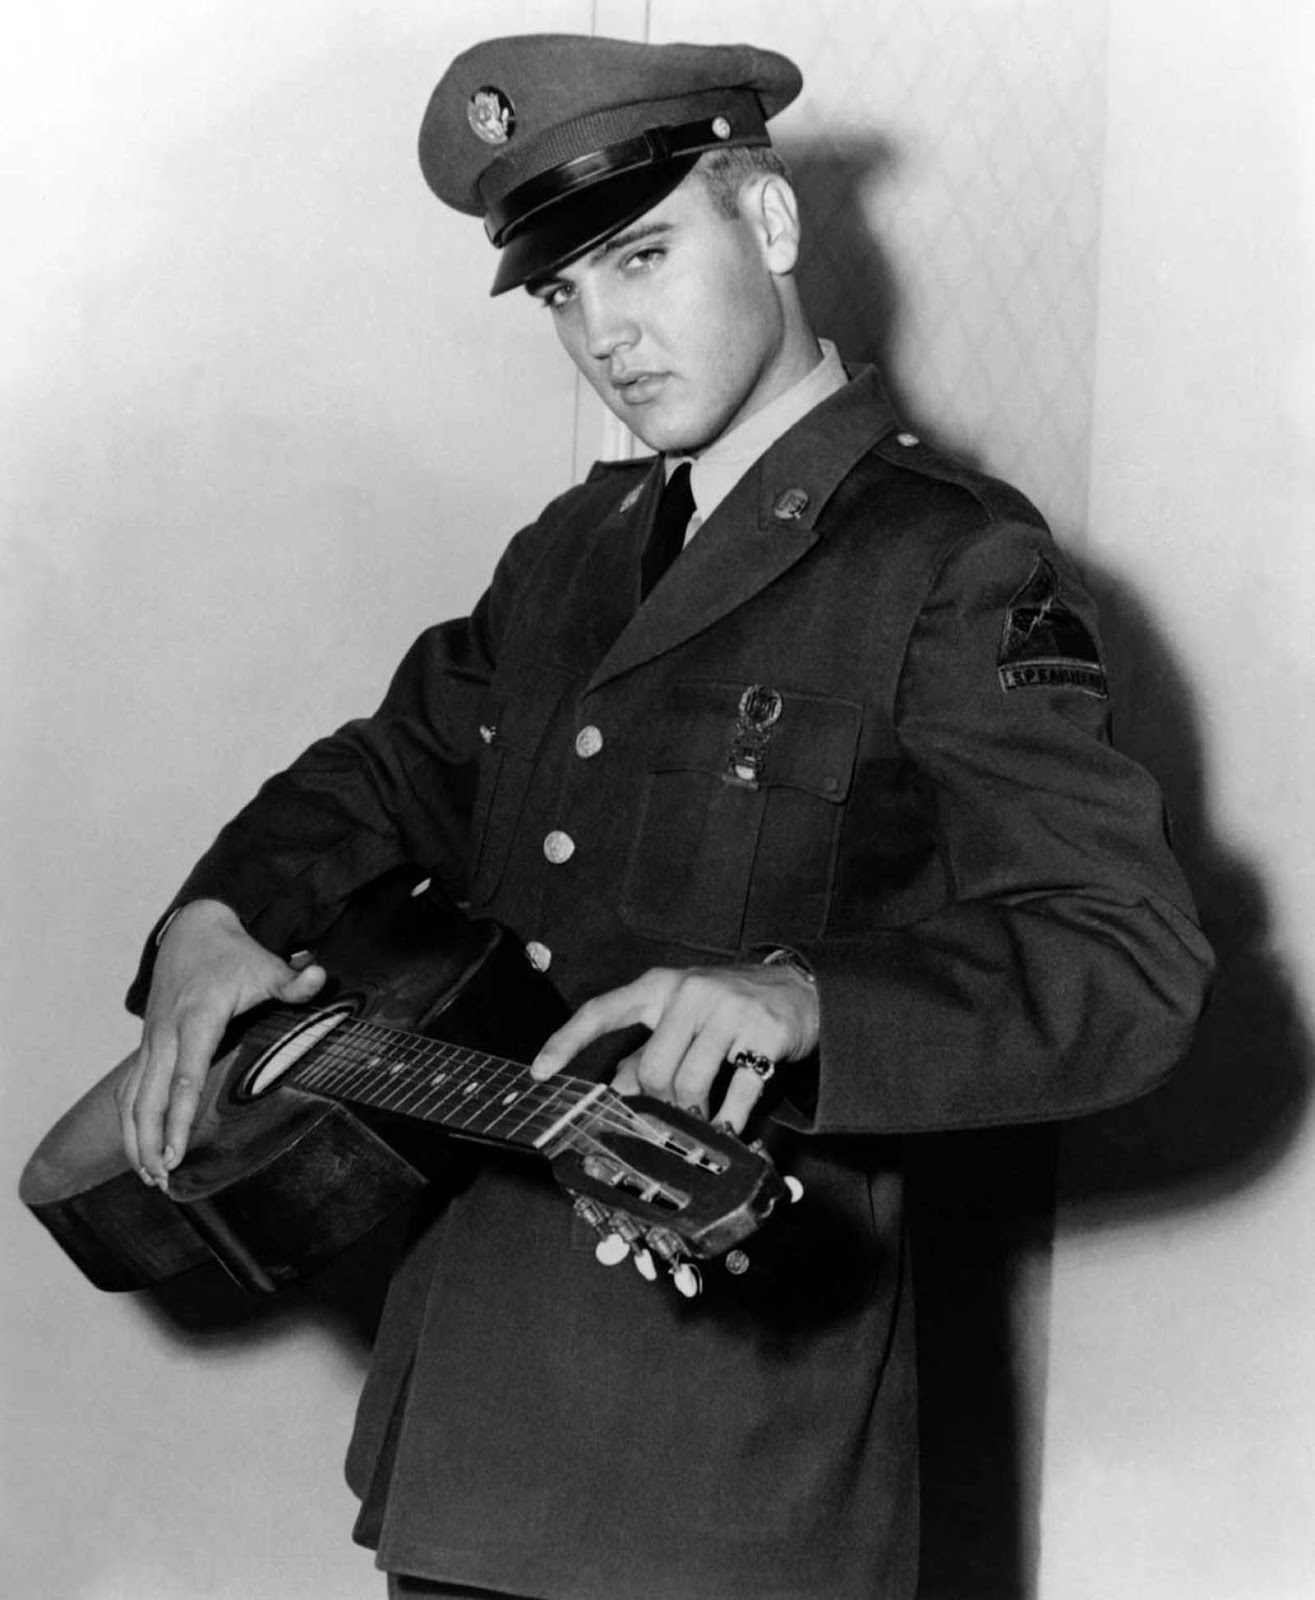 Presley the soldier poses with his guitar.